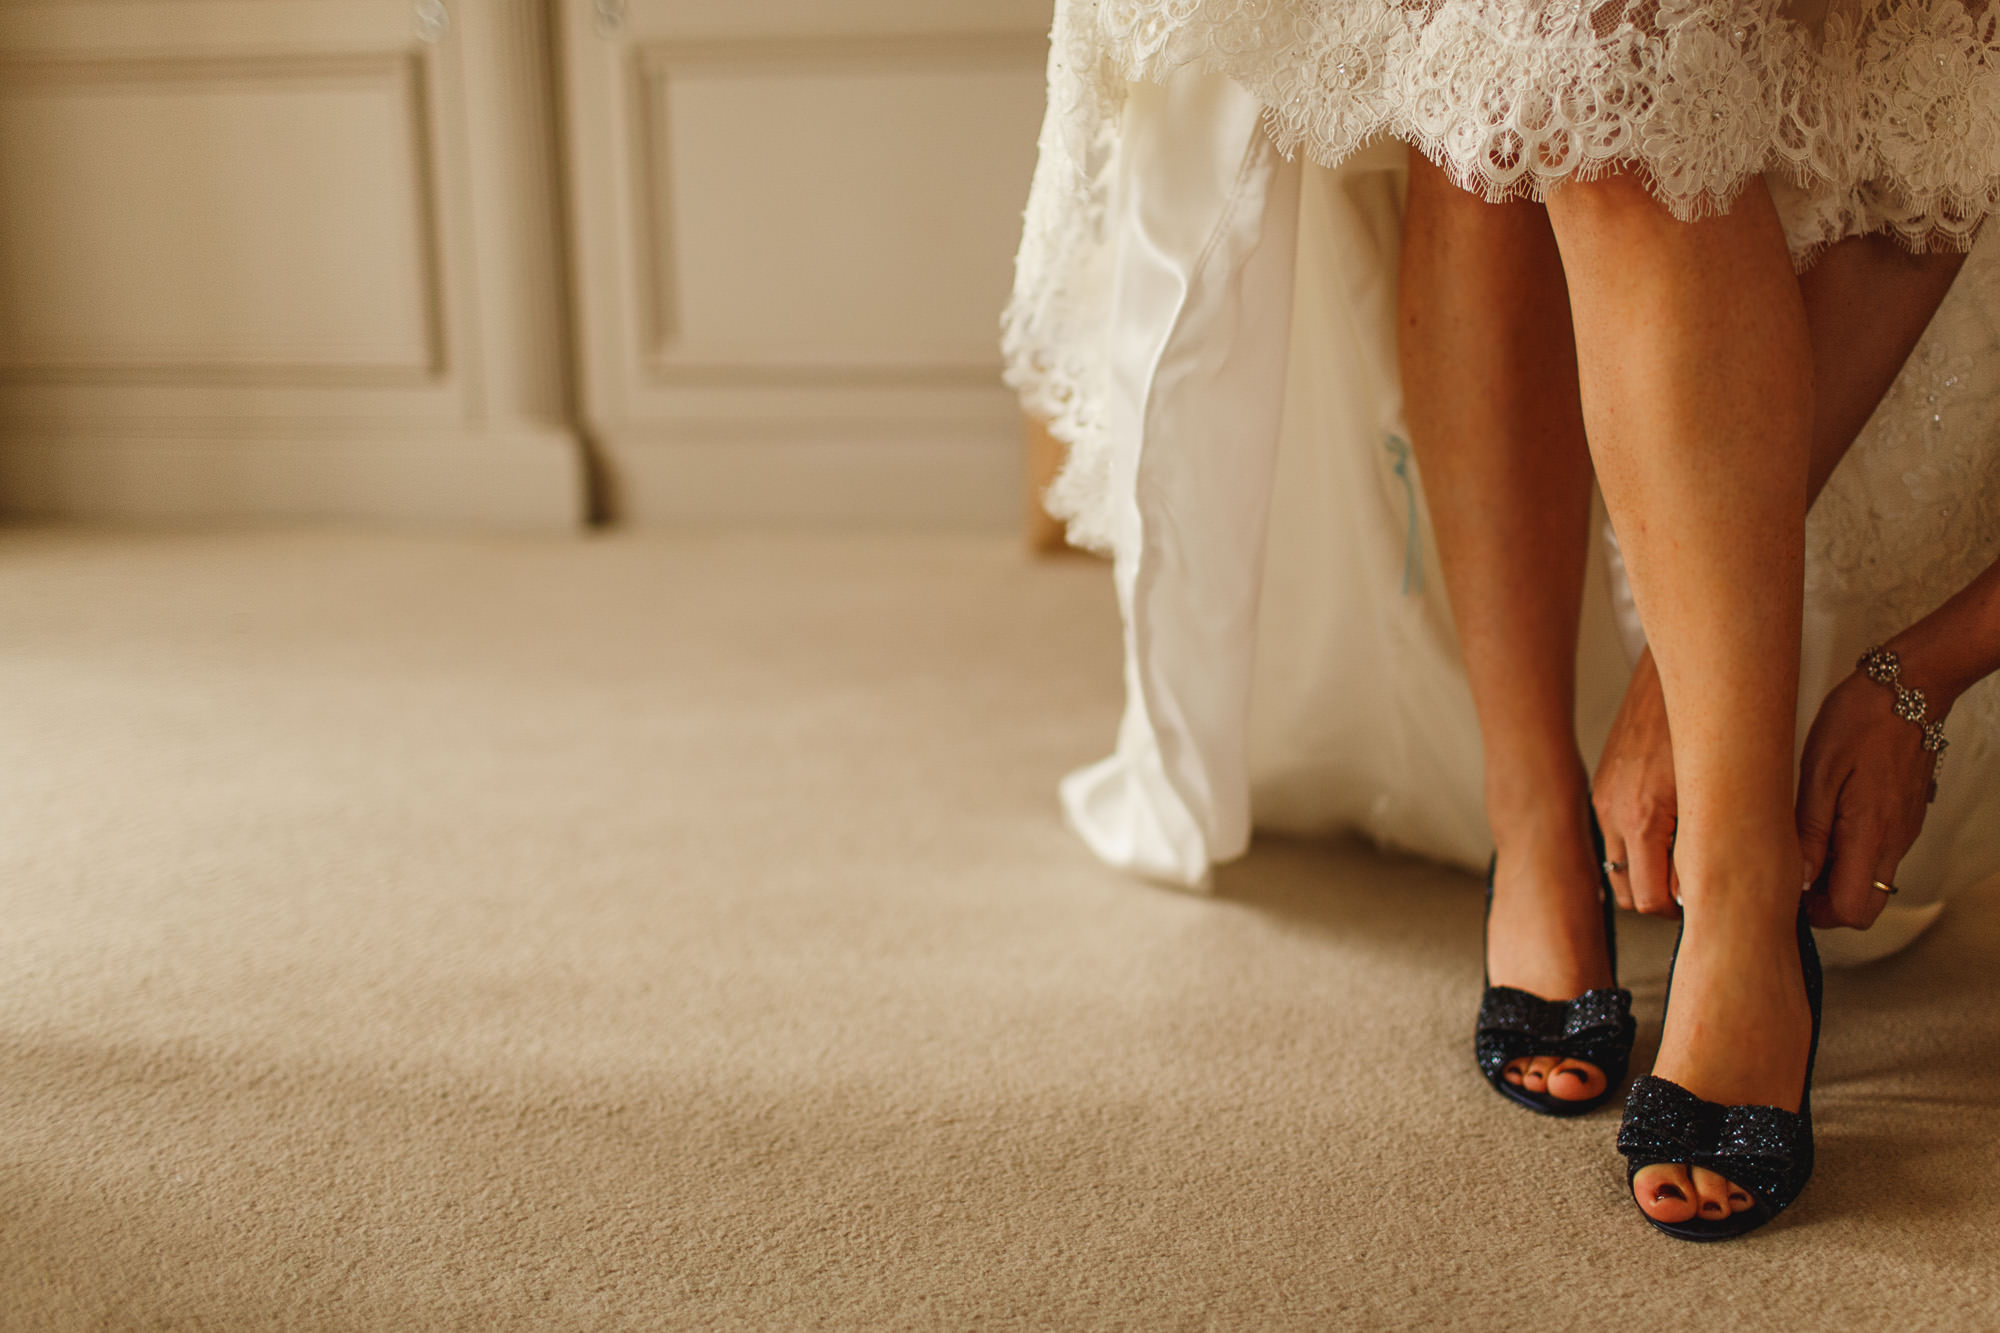 sarah-shoes-wedding-photography-details-07